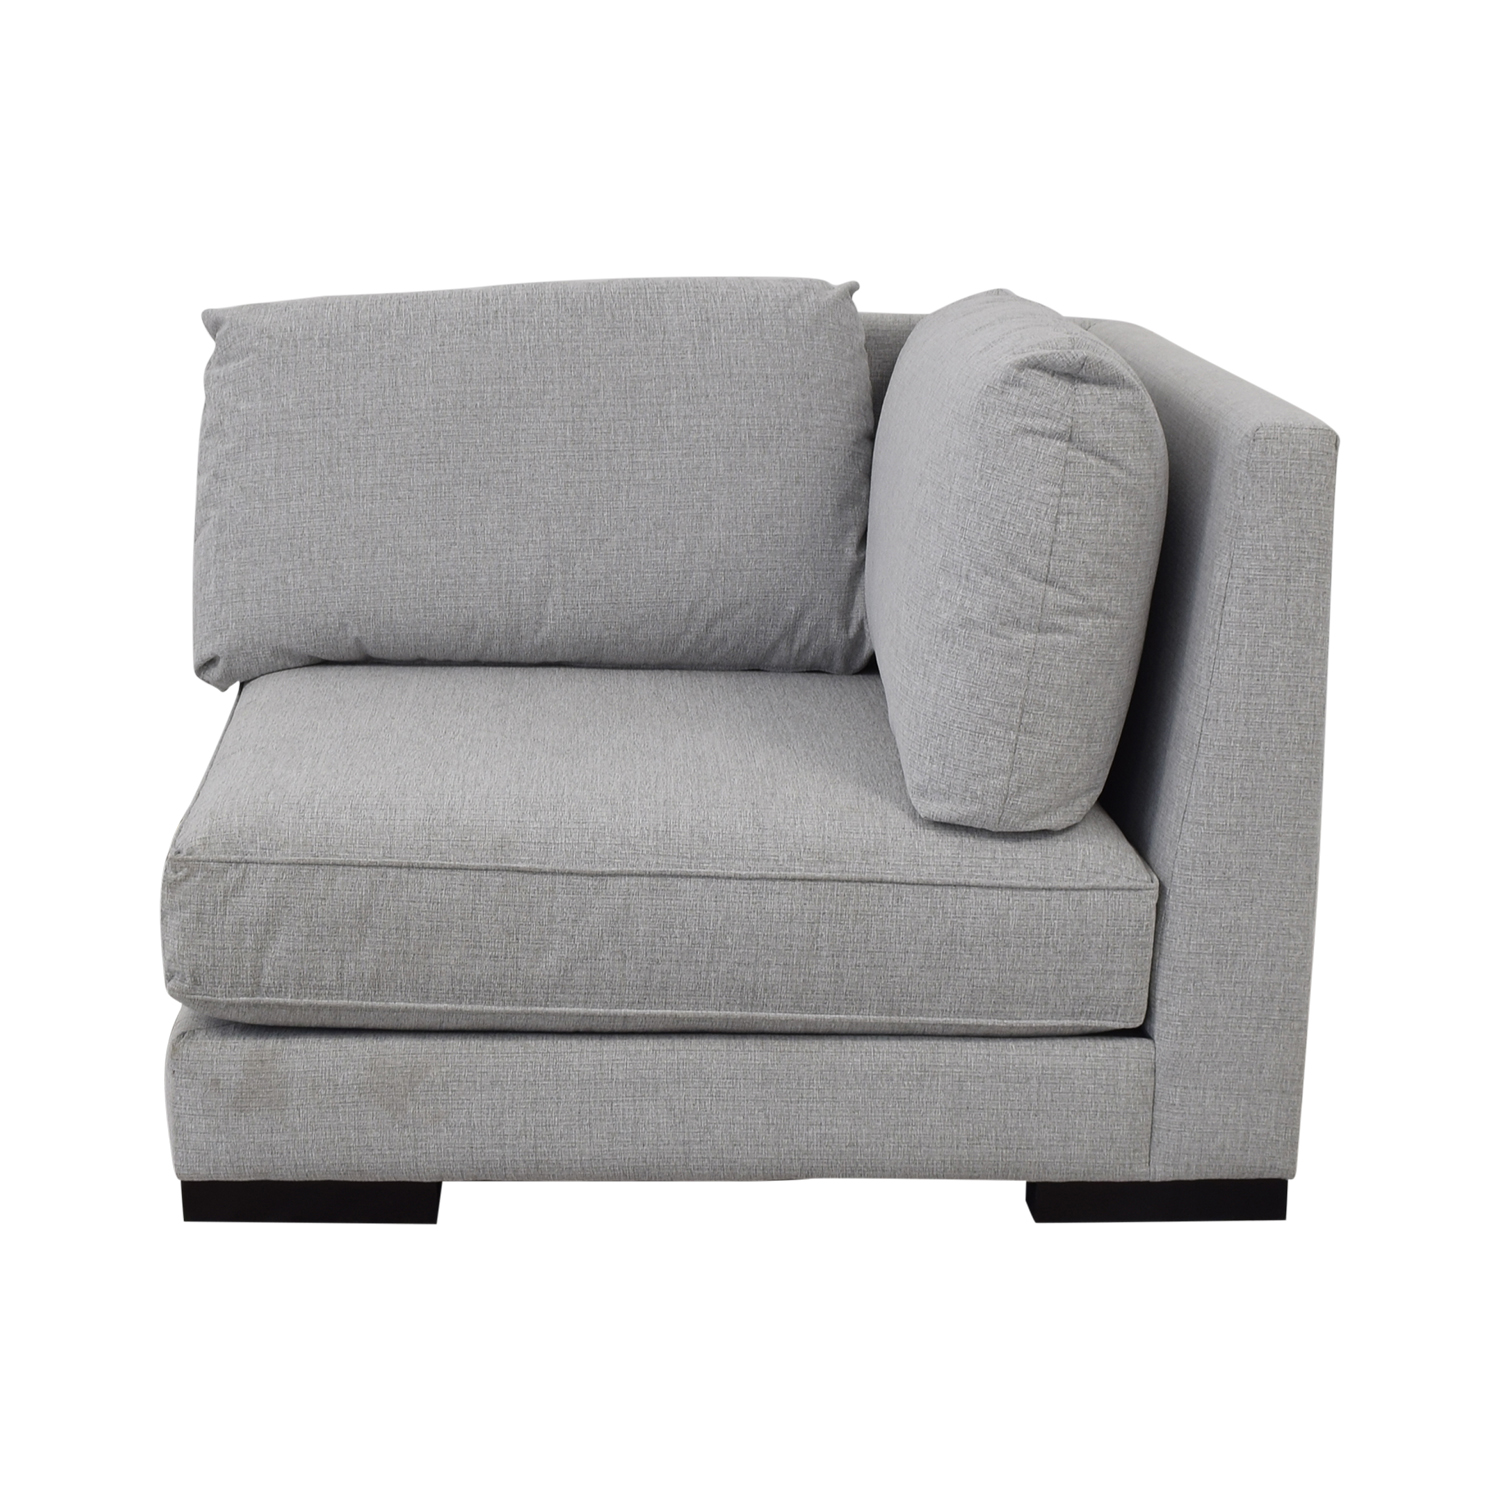 shop Younger Furniture Chill Corner Chair Younger Furniture Chairs